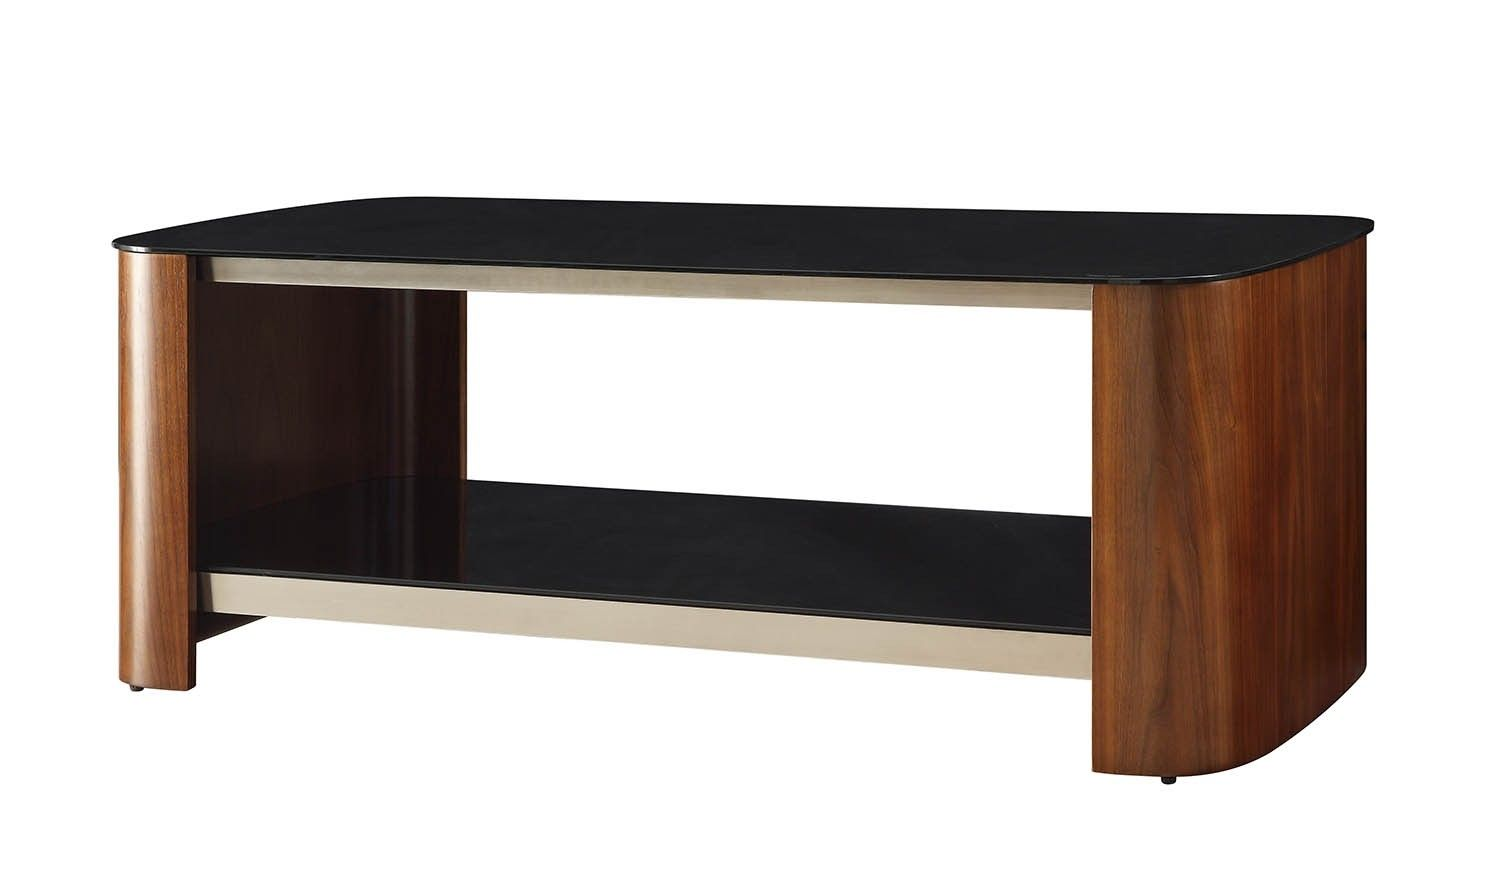 Couchtisch Curve Von Jual Jual Furnishings Jf311 Chrome Walnut Coffee Table This